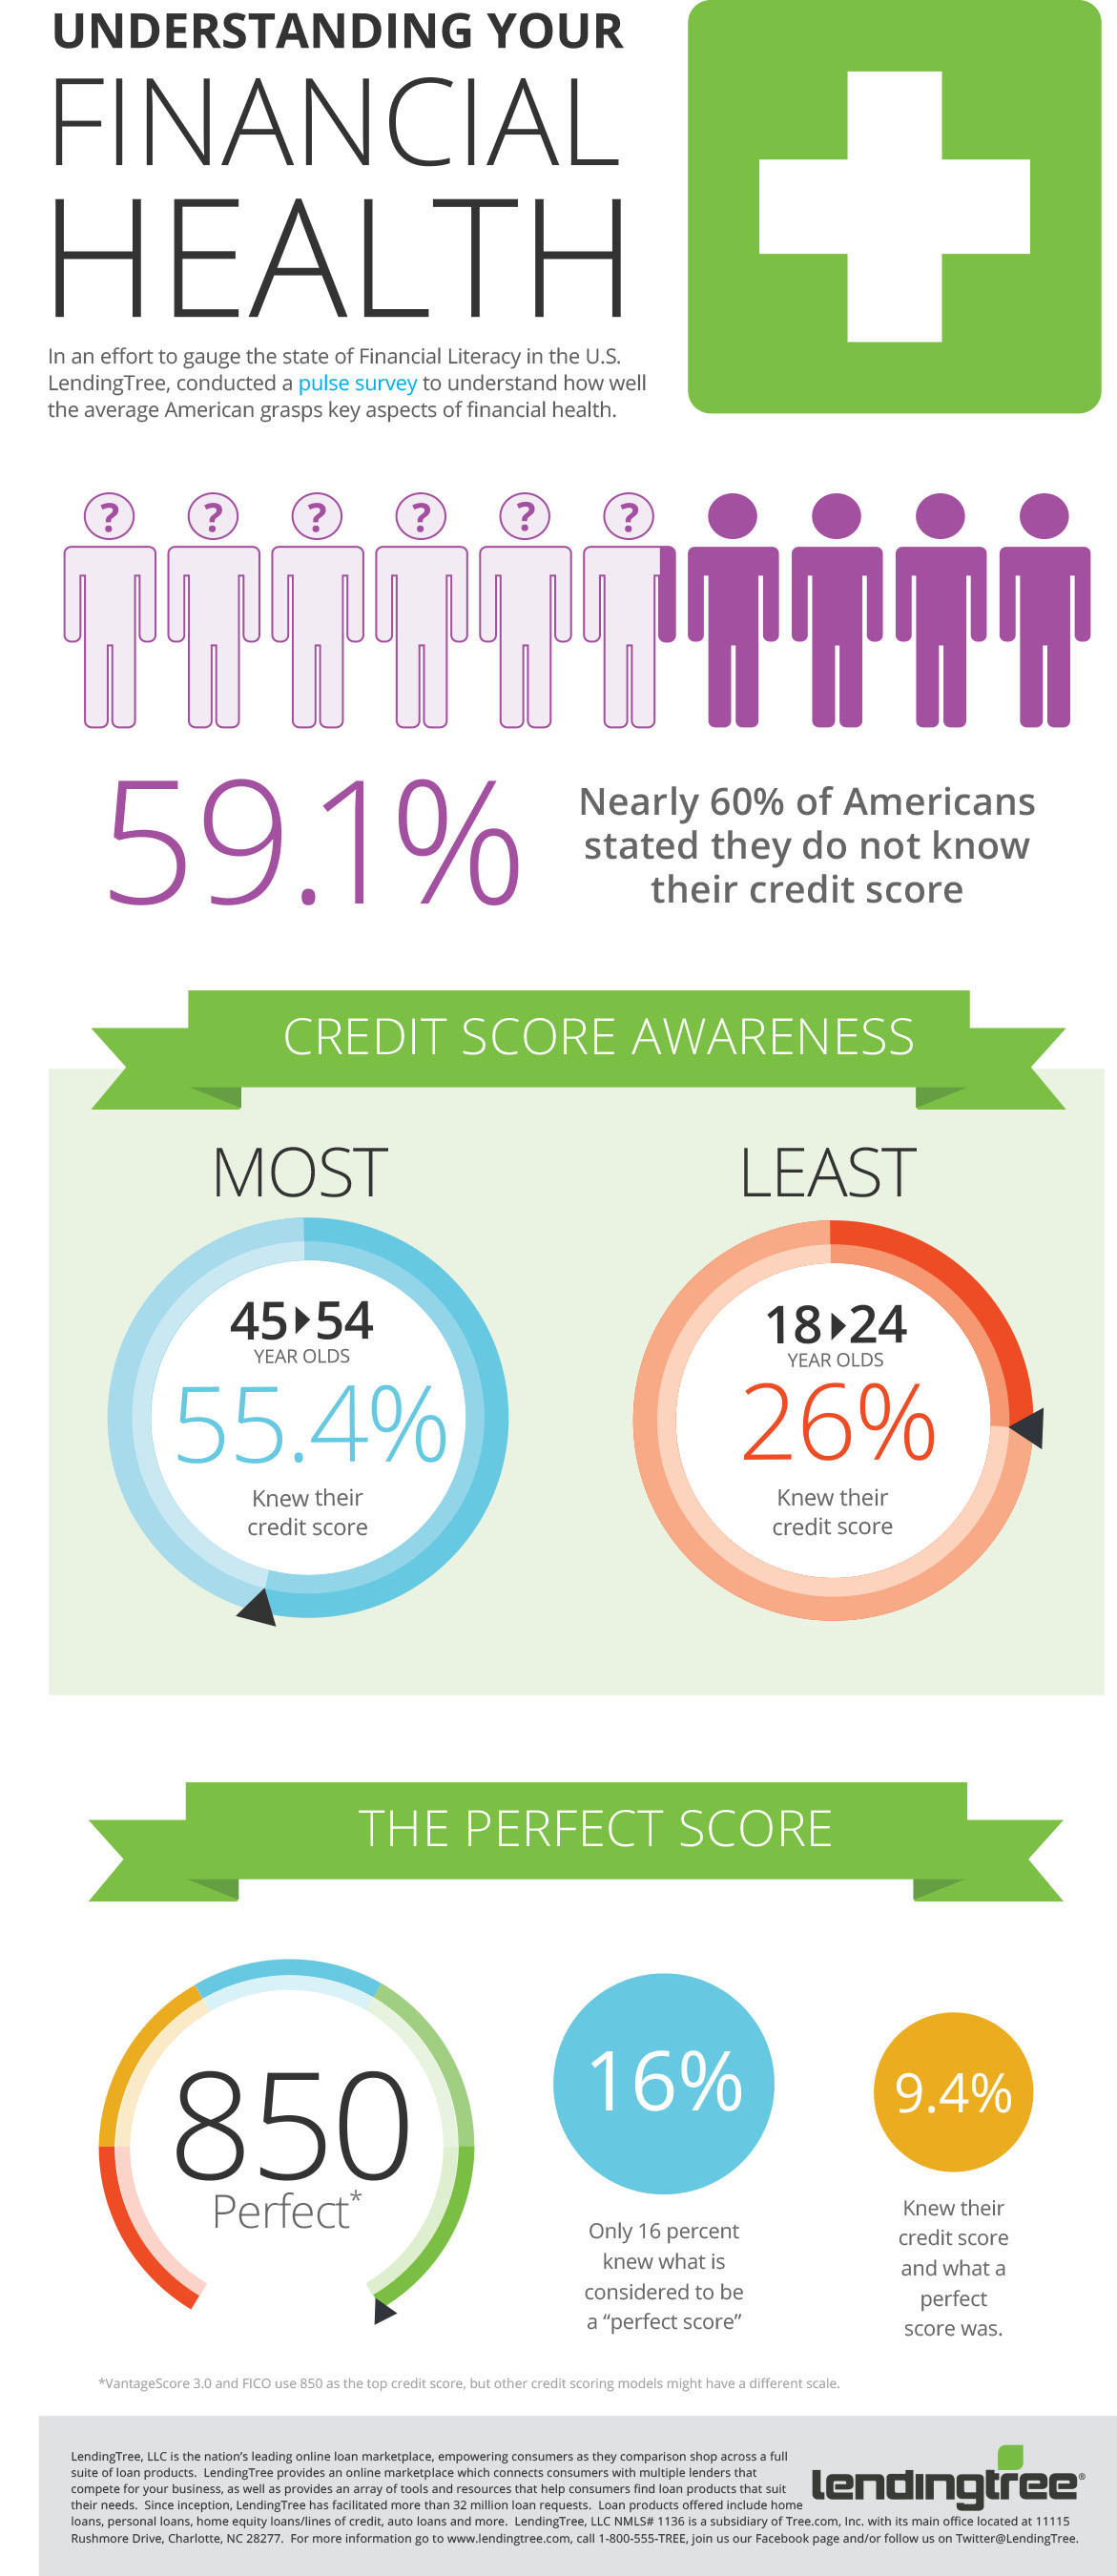 LendingTree Survey Finds Nearly 60% of Americans Don't Know Their Credit Scores; Most consumers lack critical credit health awareness (PRNewsFoto/LendingTree)